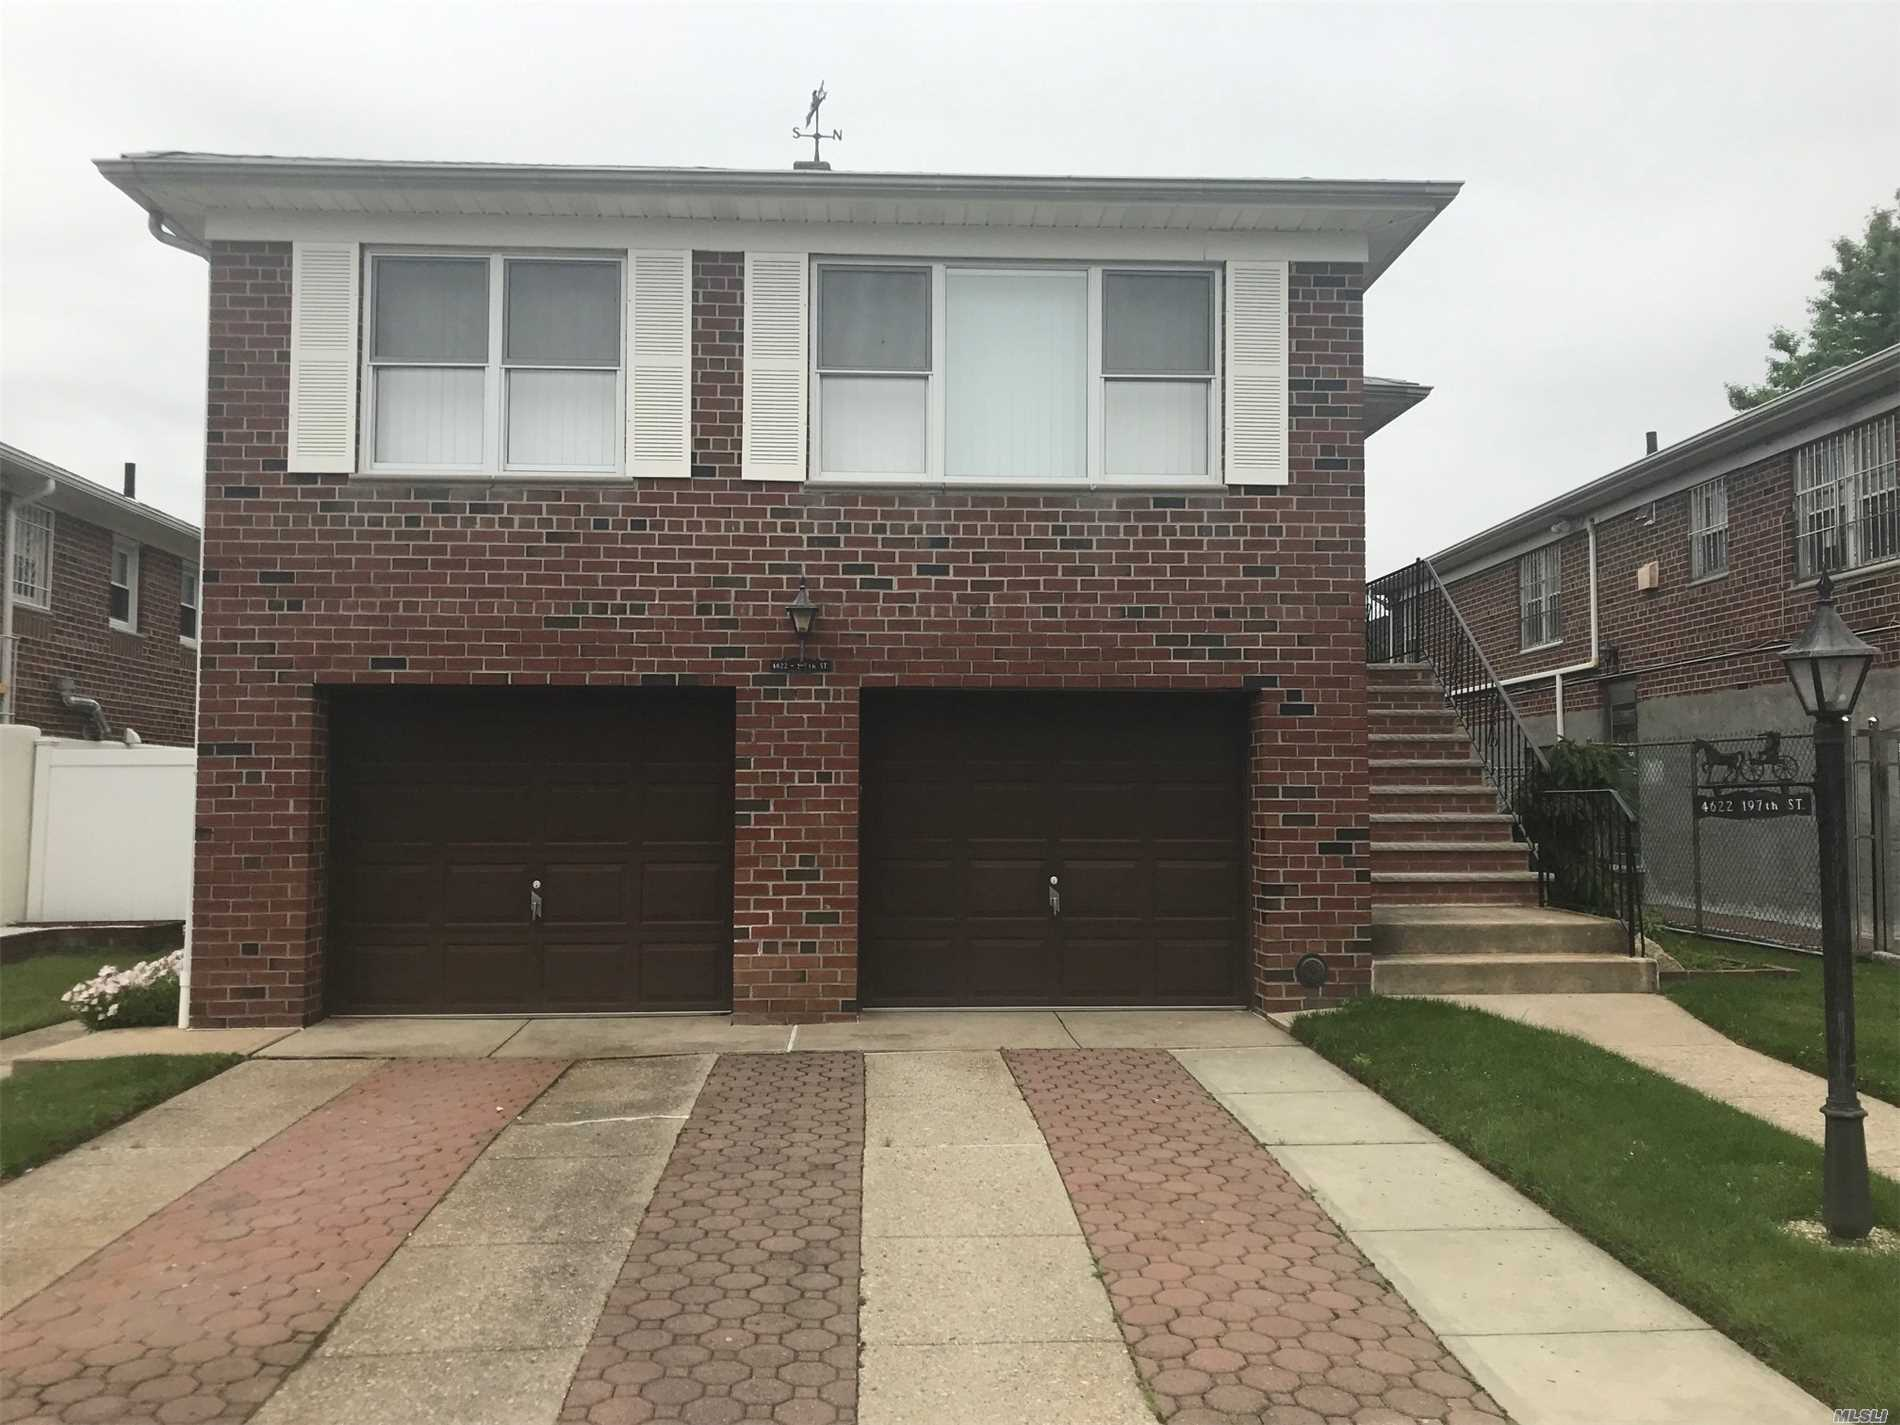 Fab brick 2 family spotless and sun-drenched home in quiet neighborhood. 1 BR apartment on 1st floor, 3 BR apartment on 2nd floor. Deep private yard with patio. 2 car attached garage. Updated Kitchen and Bath. This is a must see